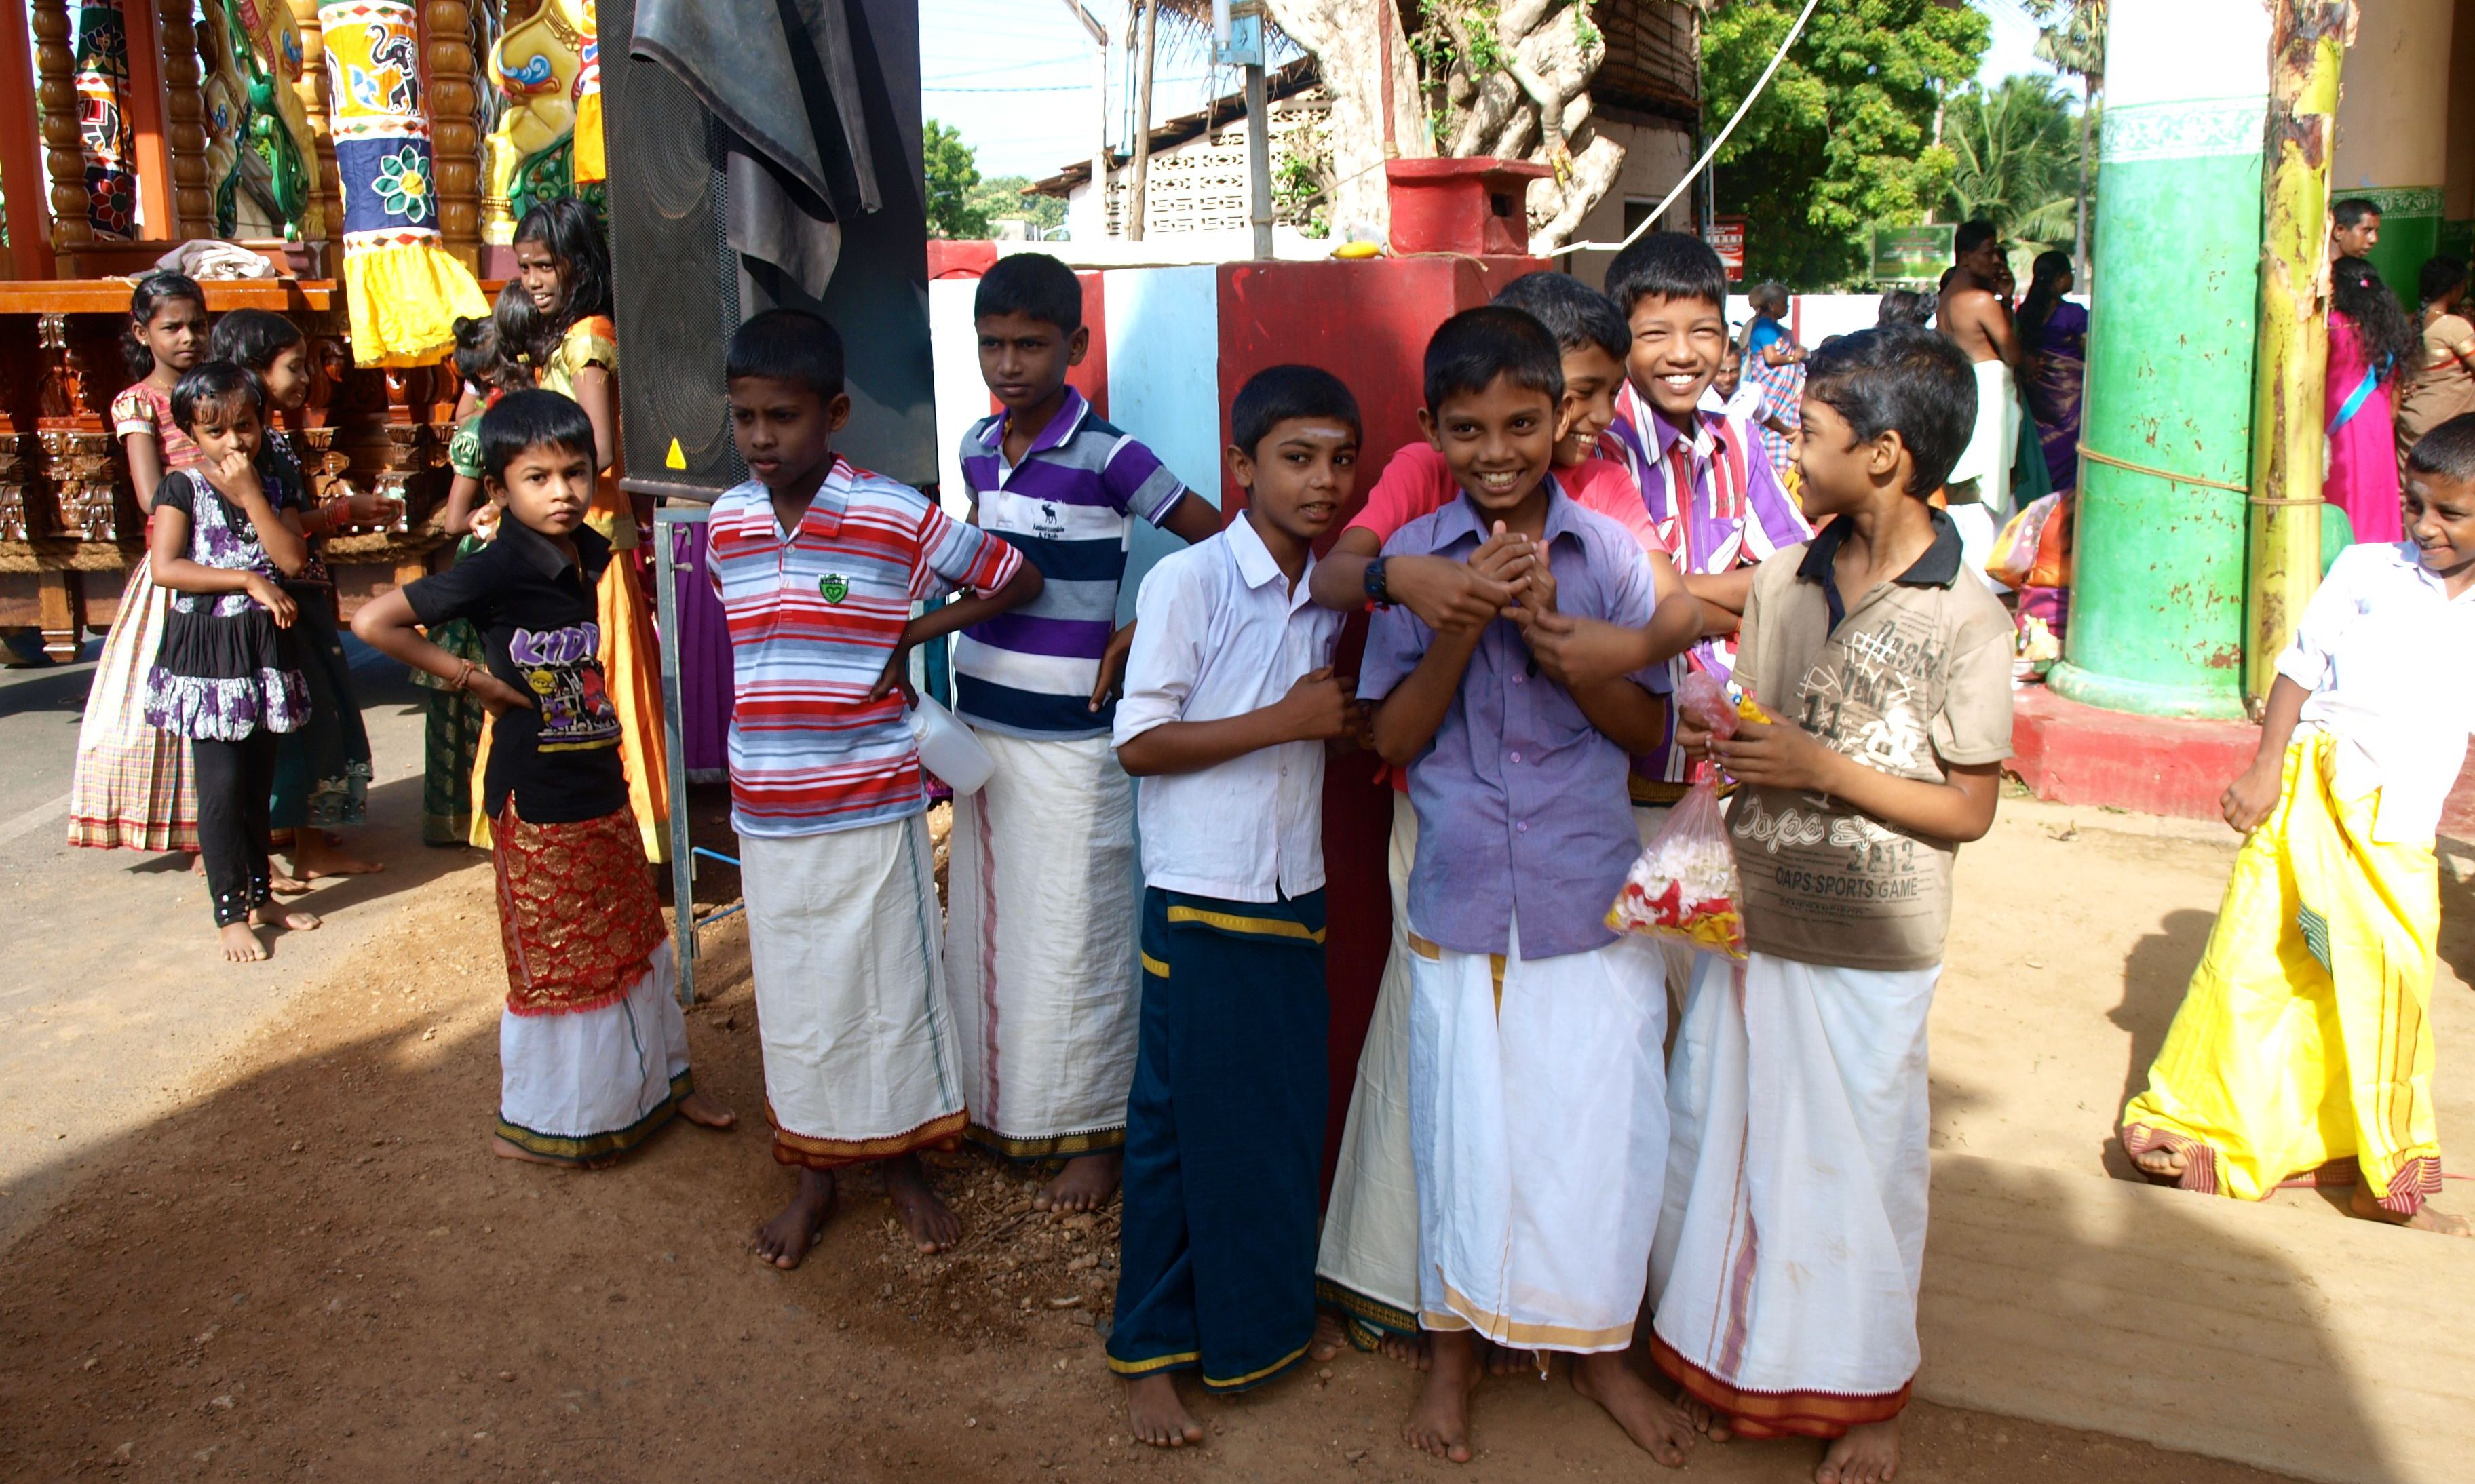 Local Children at the Hindu Festival in Jaffna, discover sri lanka